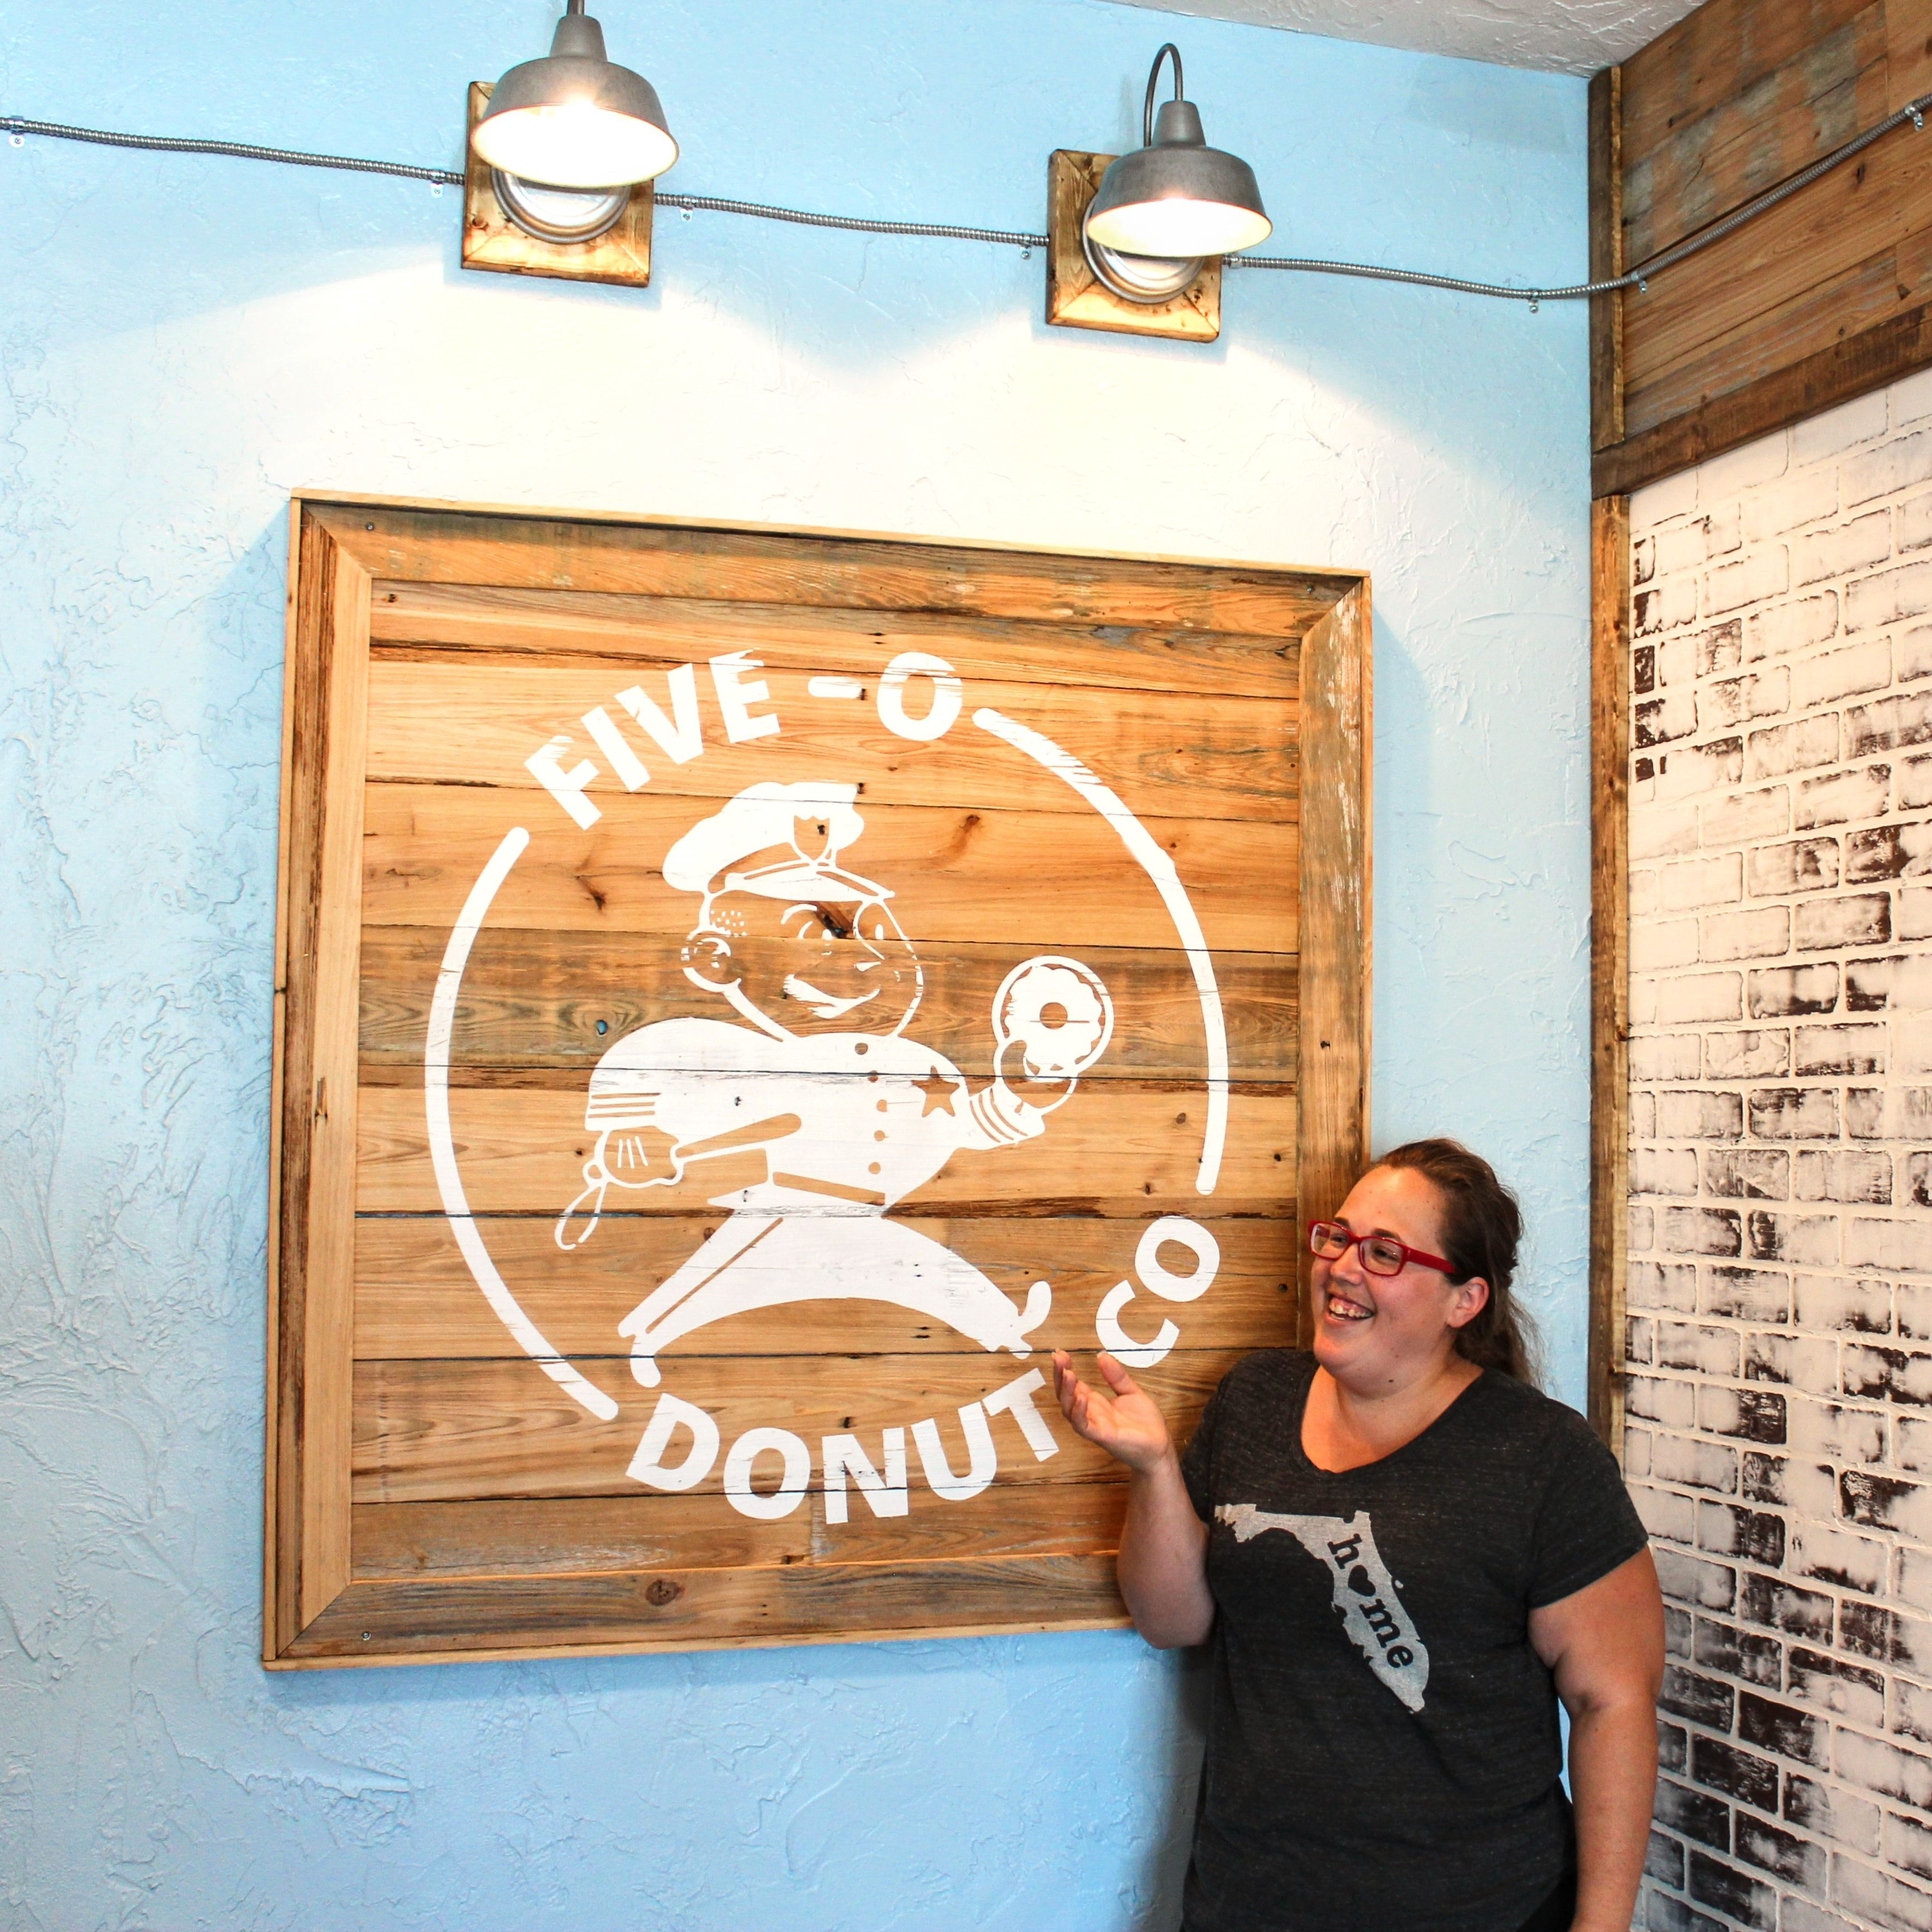 Five o donut co btj4du